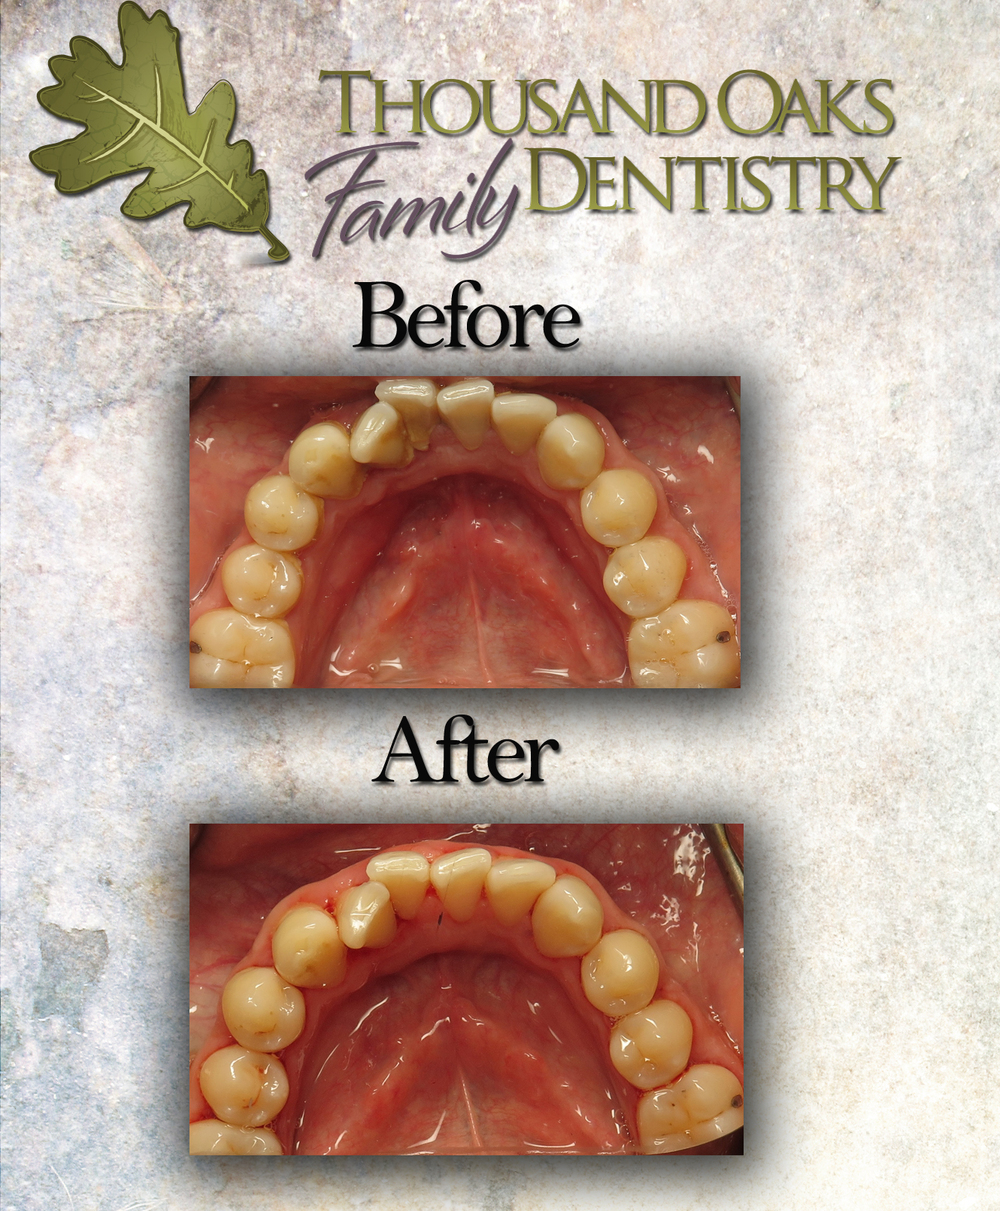 Pictured: A cleaning done at Thousand Oaks Family Dentistry using an ultrasonic scaler.